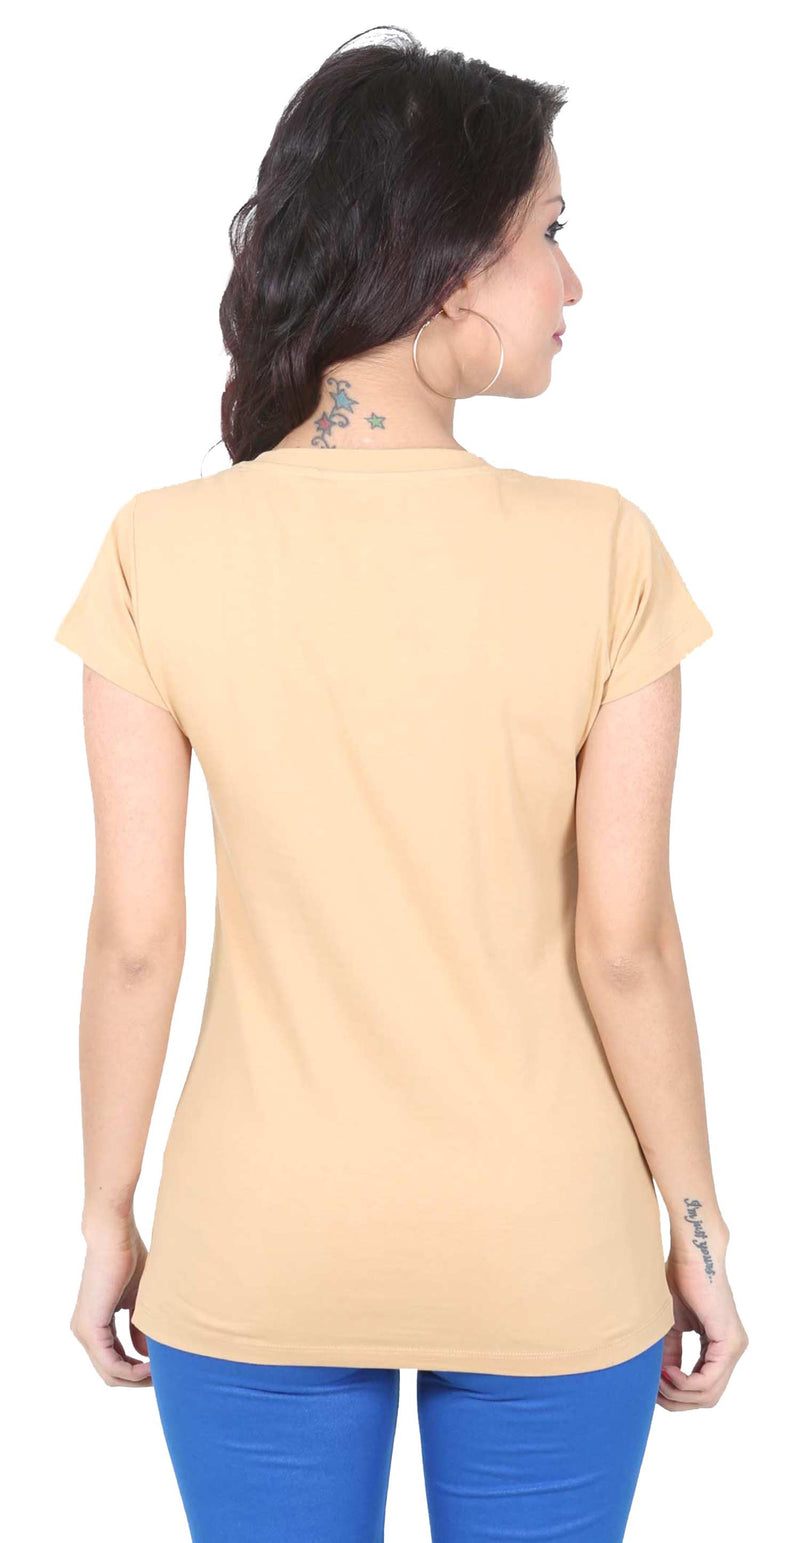 De Moza- Ladies Half Sleeve Skin Top - De Moza